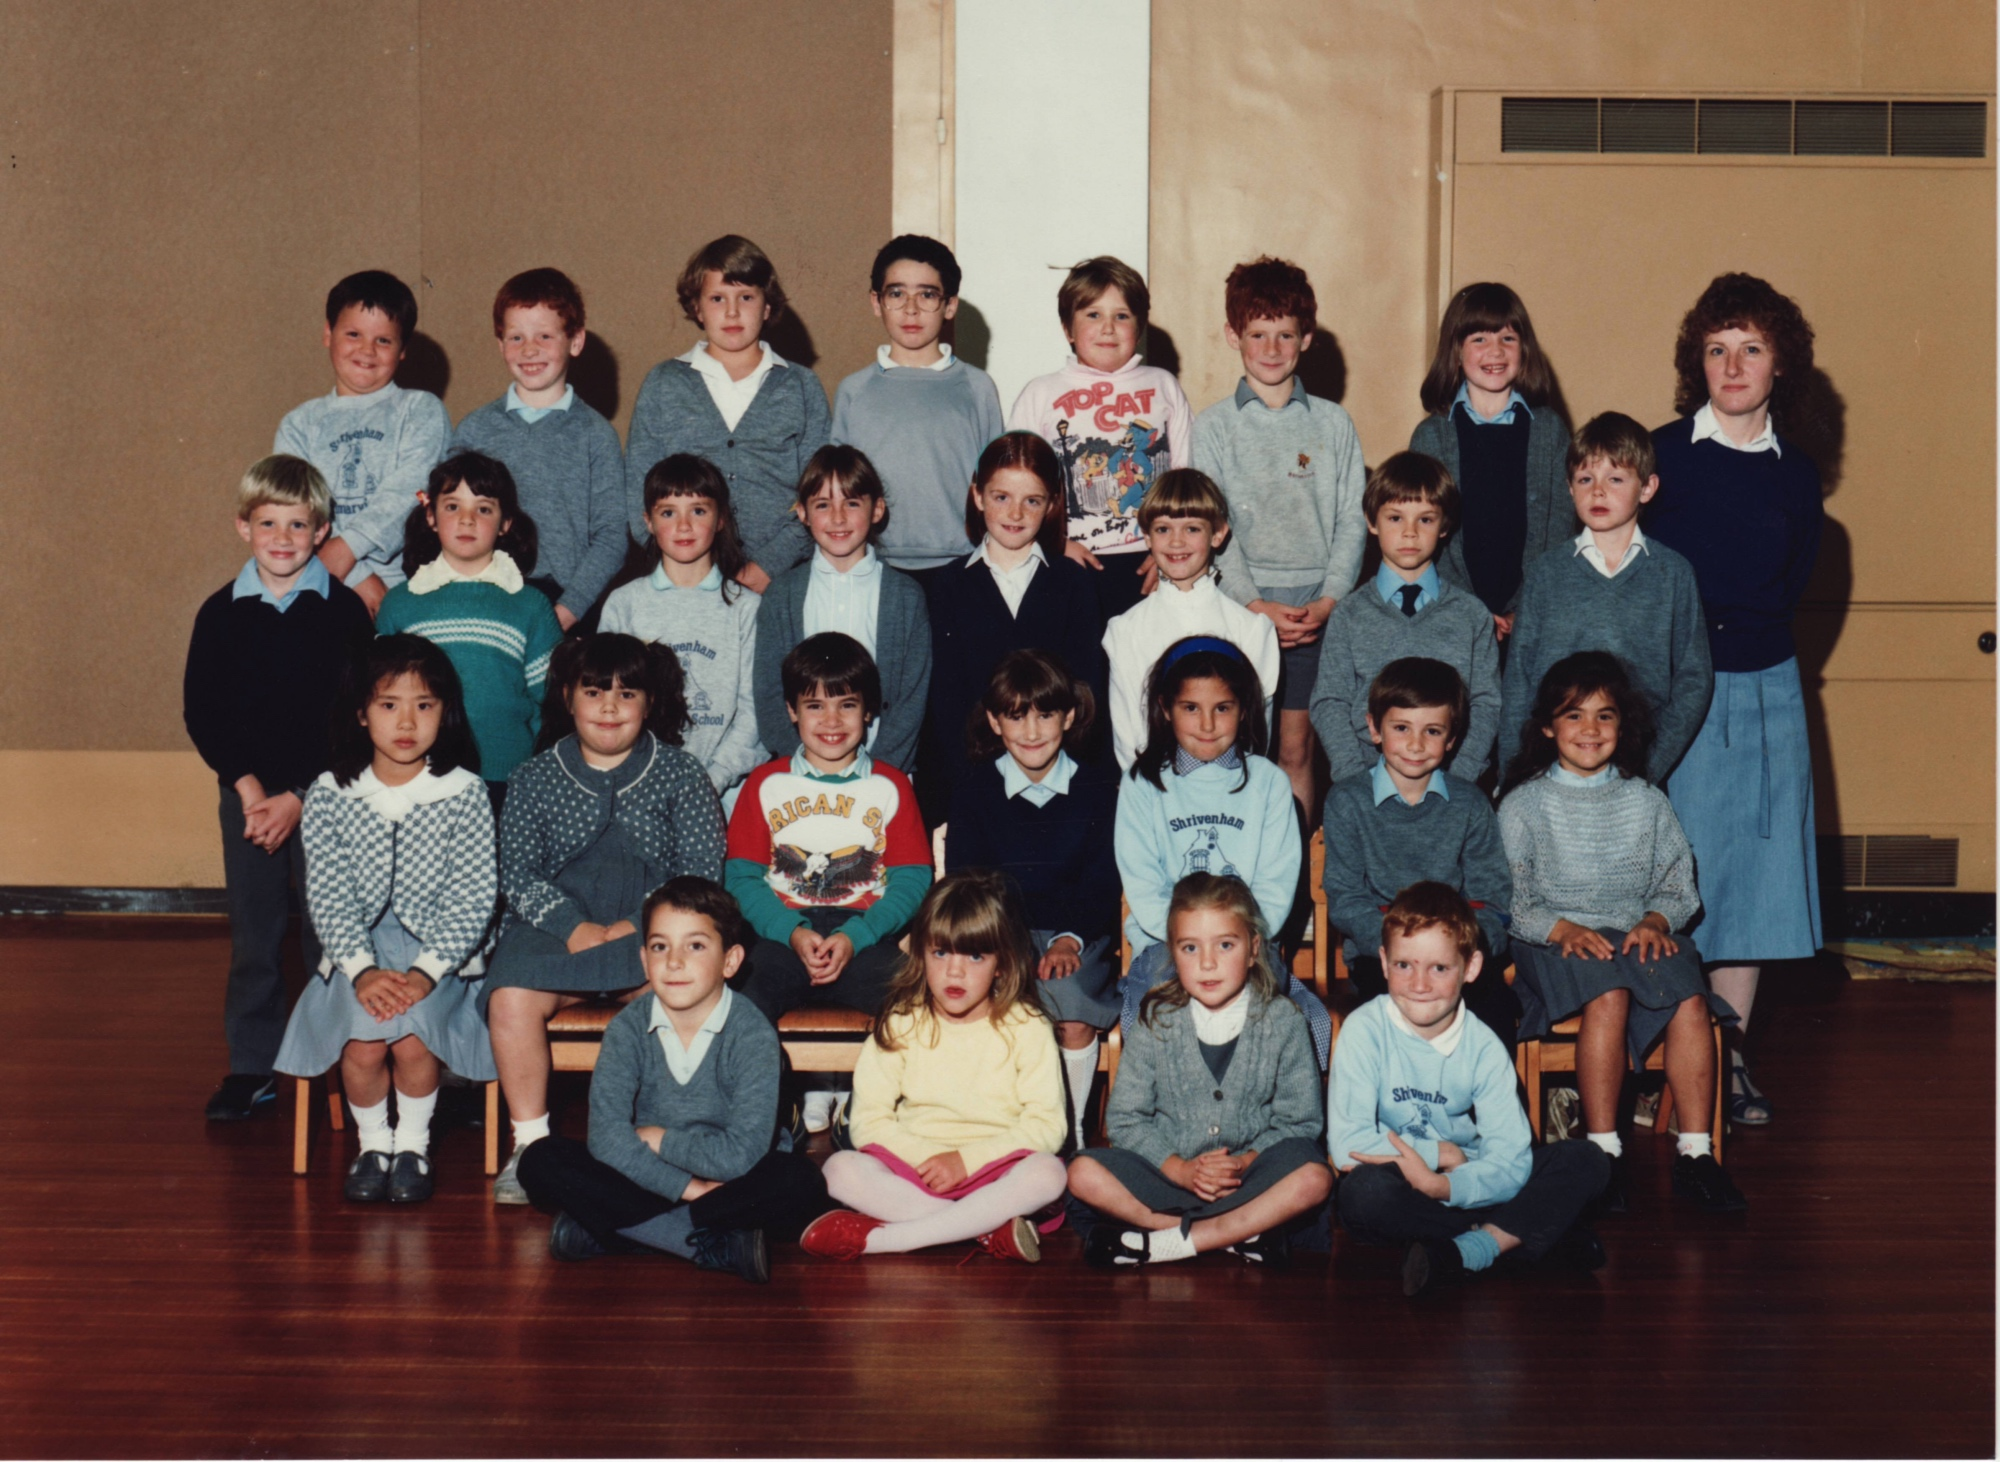 Shrivenham School Class of Sept 1988